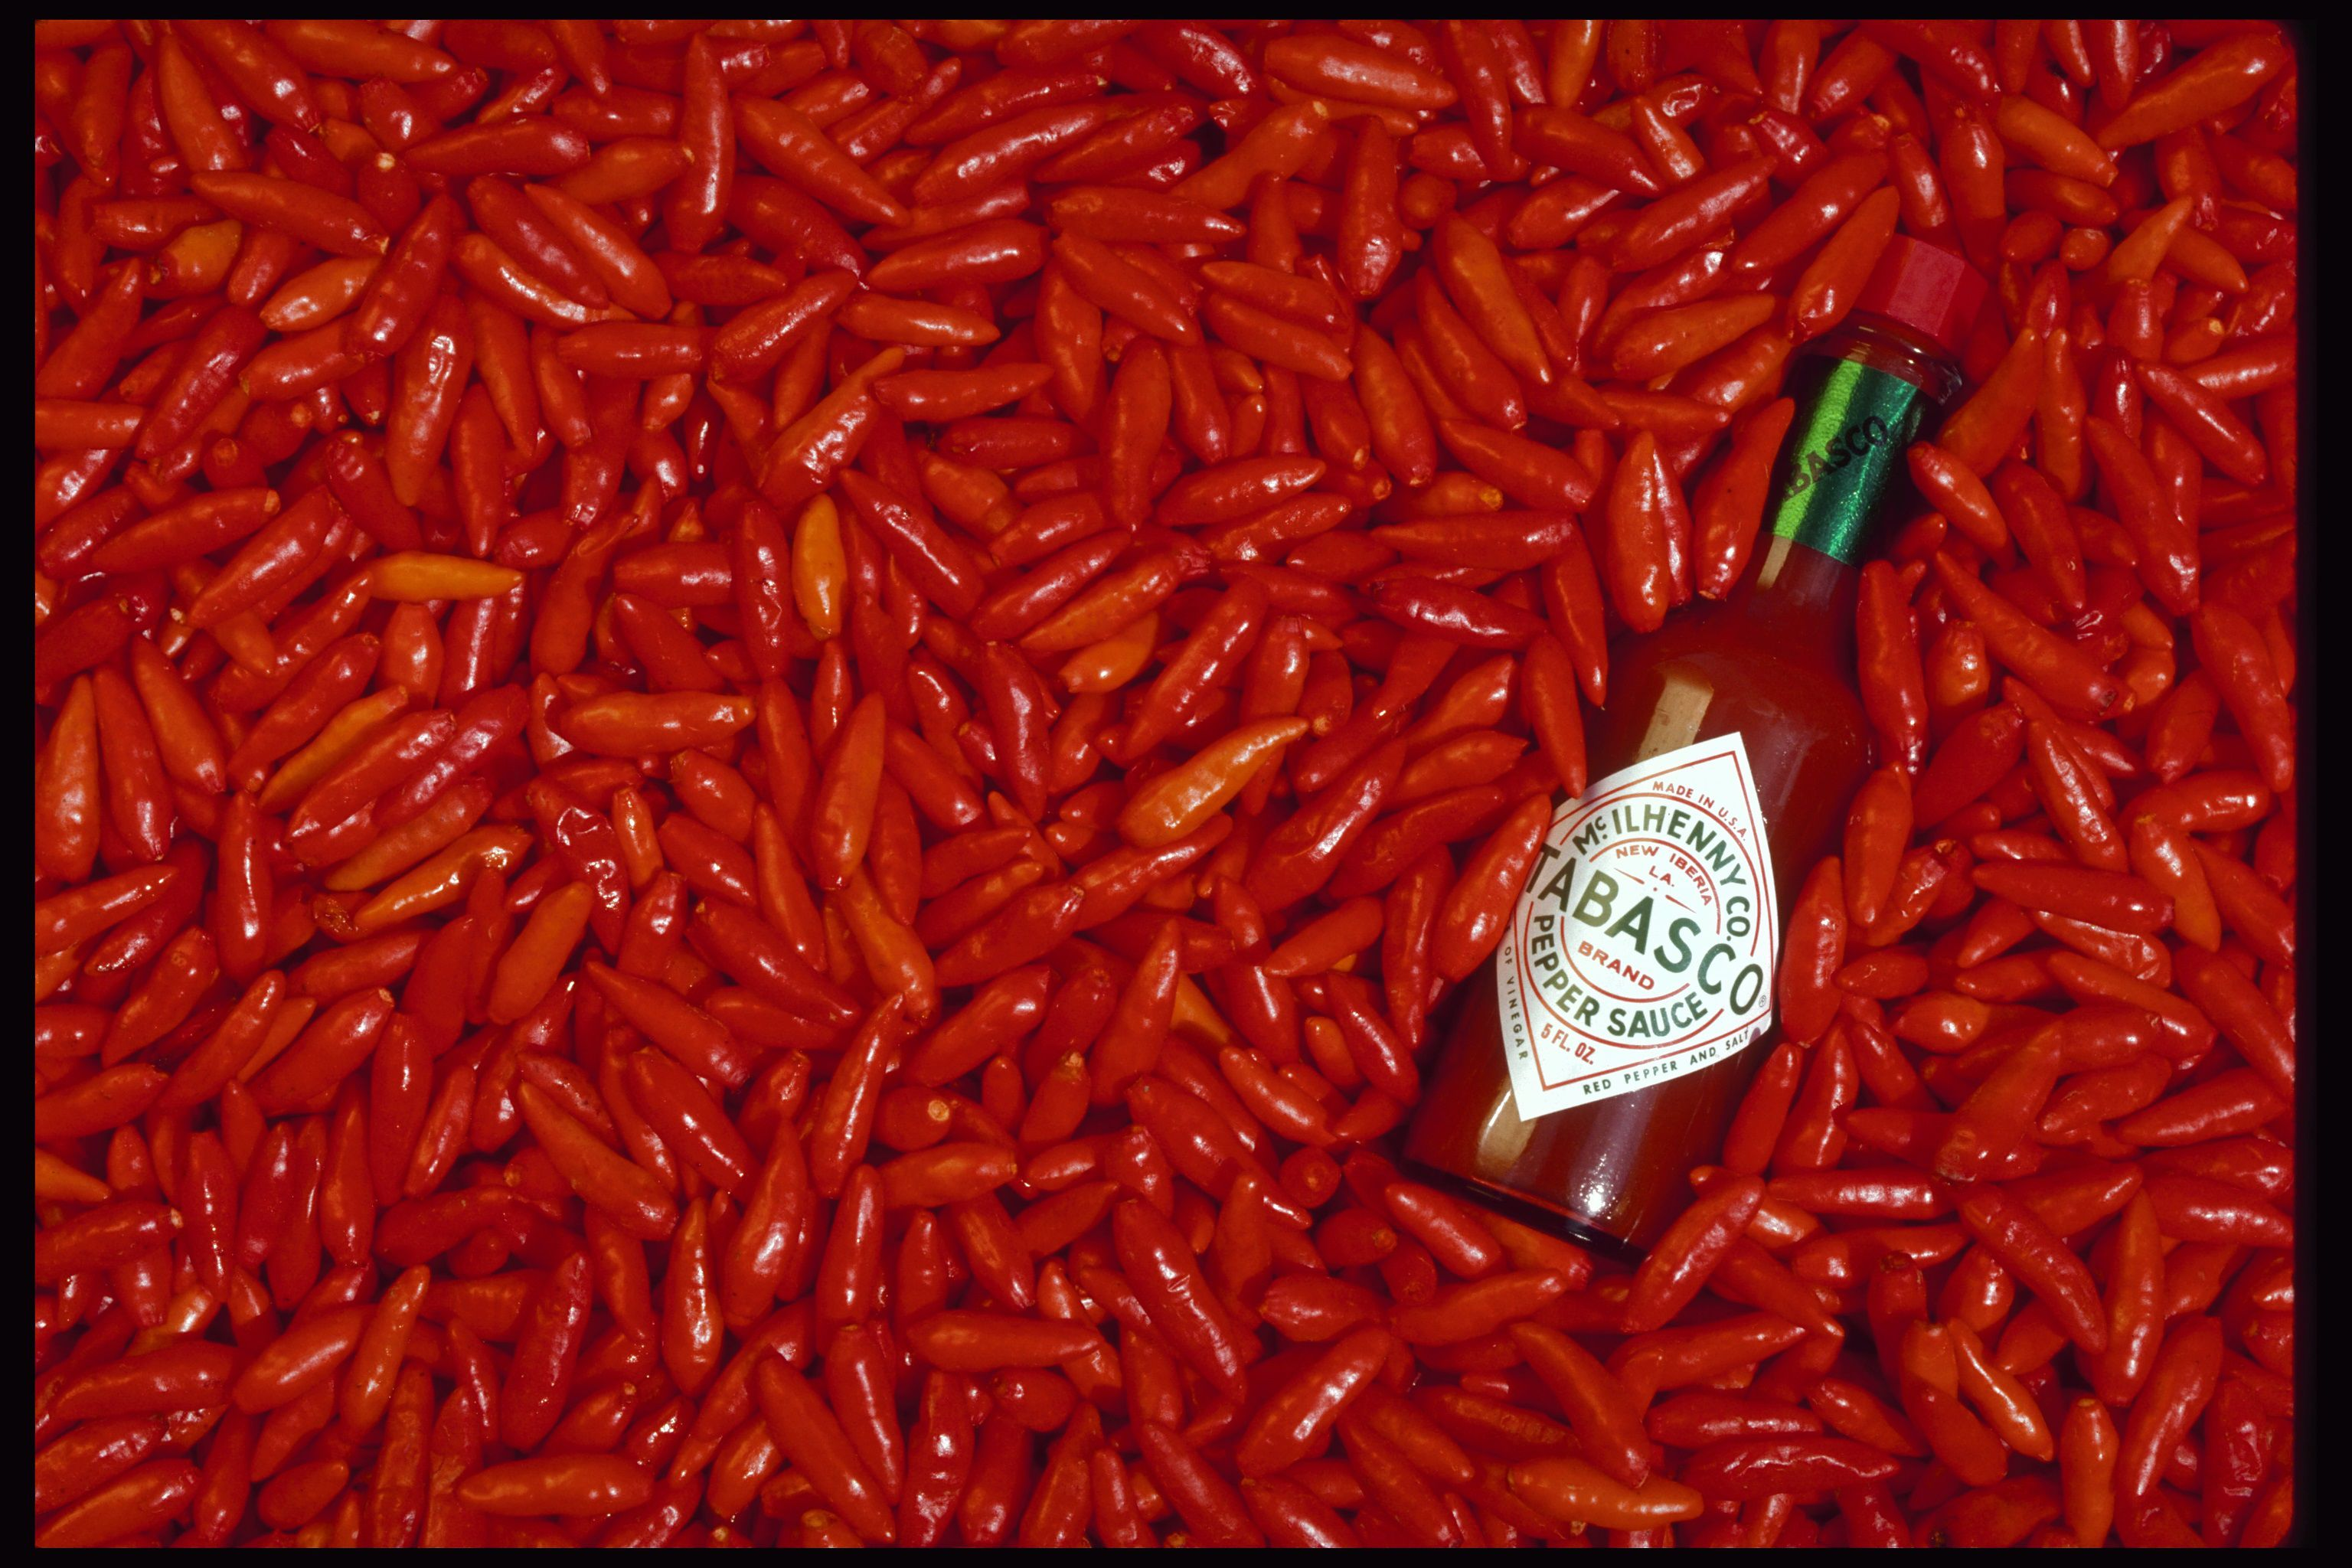 Fun Facts To Know About Tabasco Hot Sauce